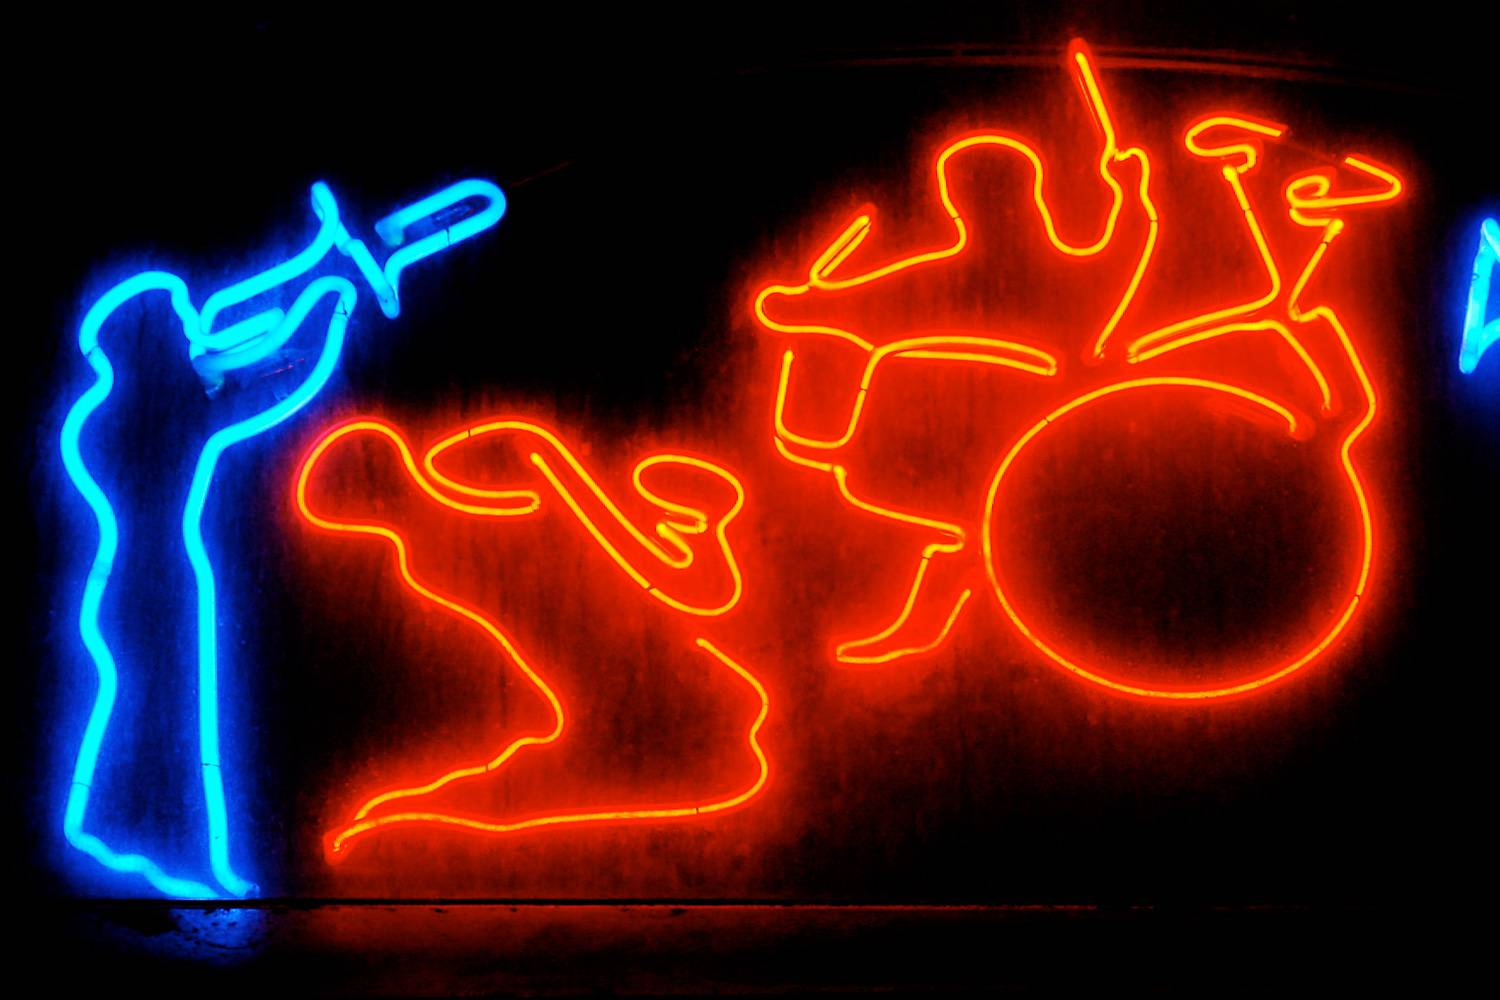 An image of a neon sign where jazz musicians are shown performing their instruments.